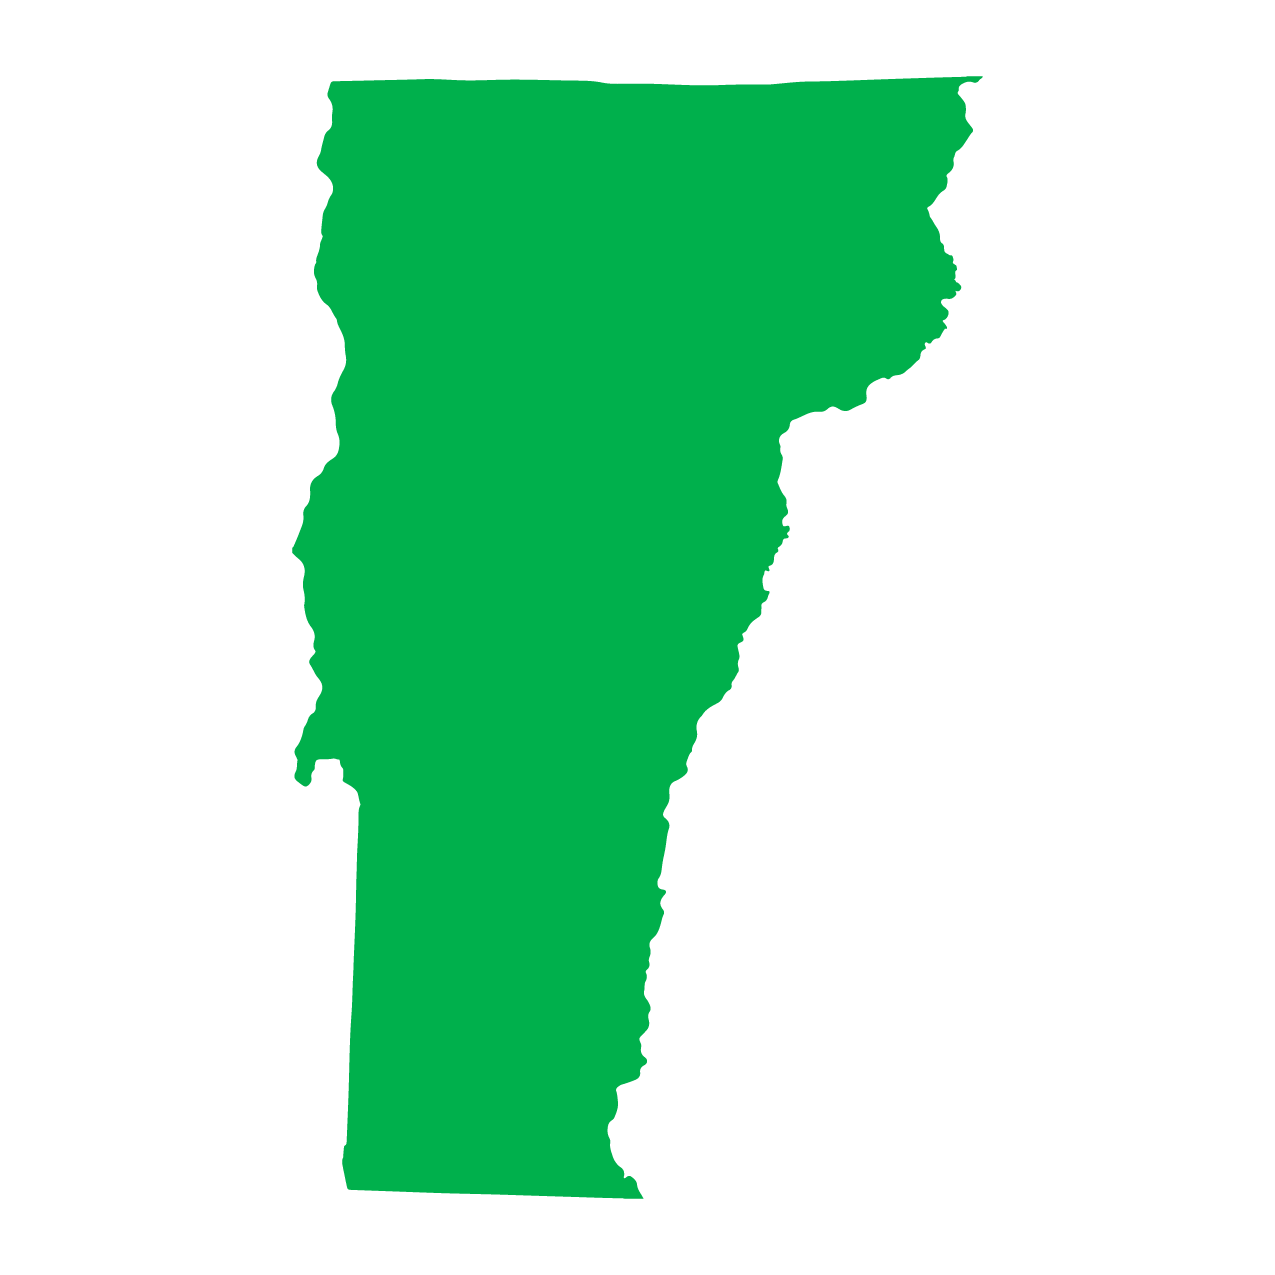 States_Vermont.png